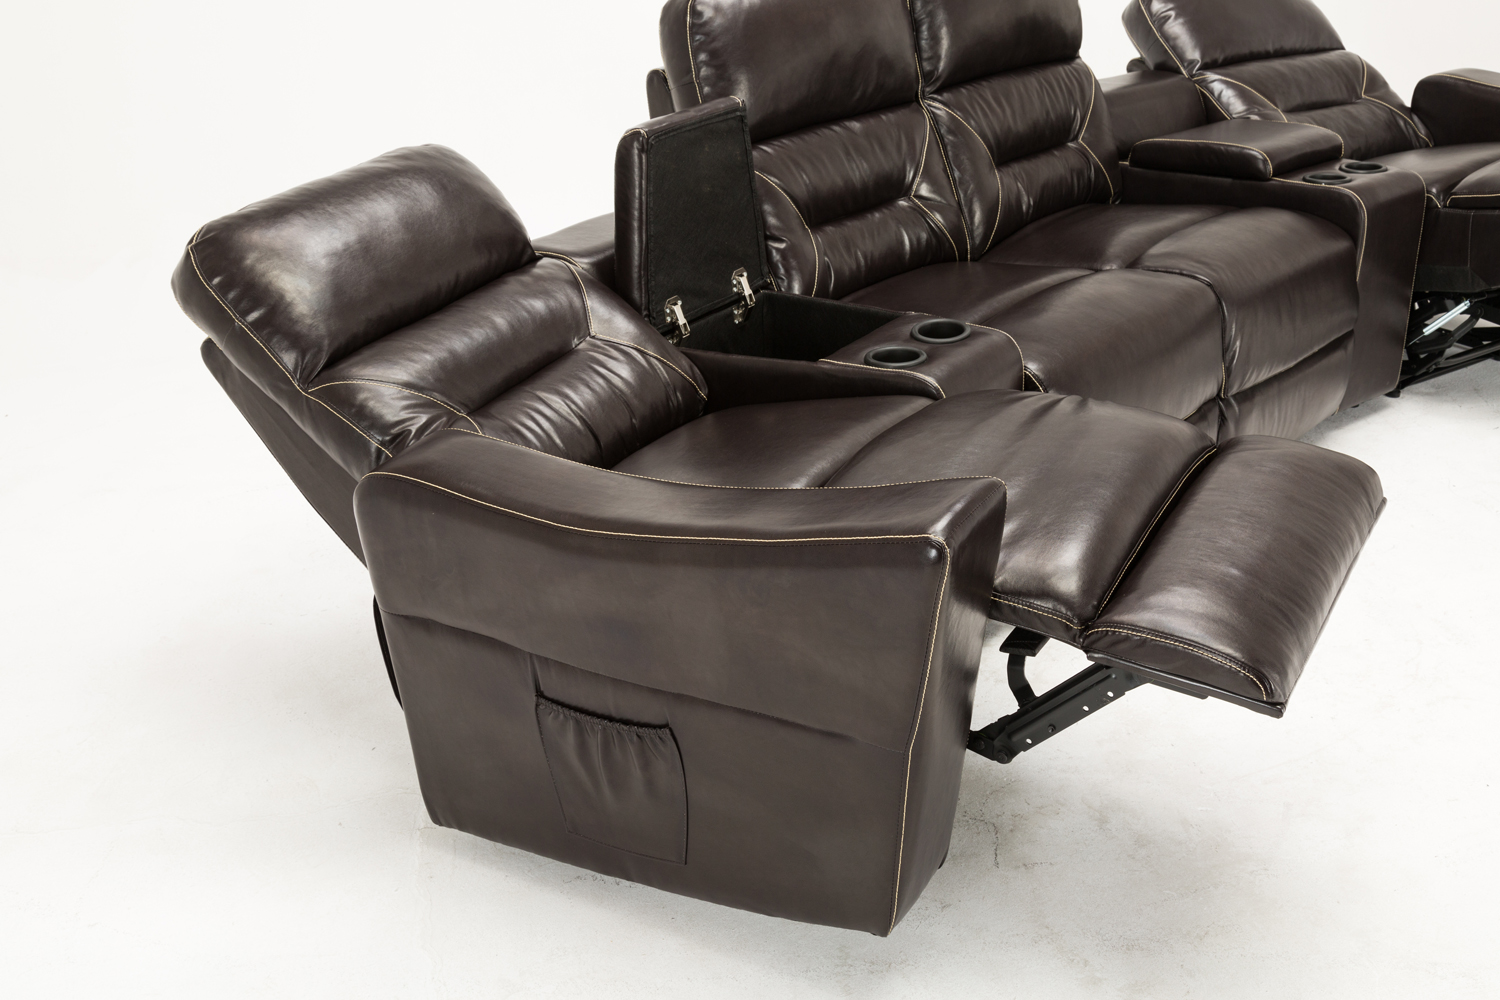 Mcombo Brown Vibrating 4pc Home Theater Recliner Media Sofa Set Cup Holder 7096 Ebay